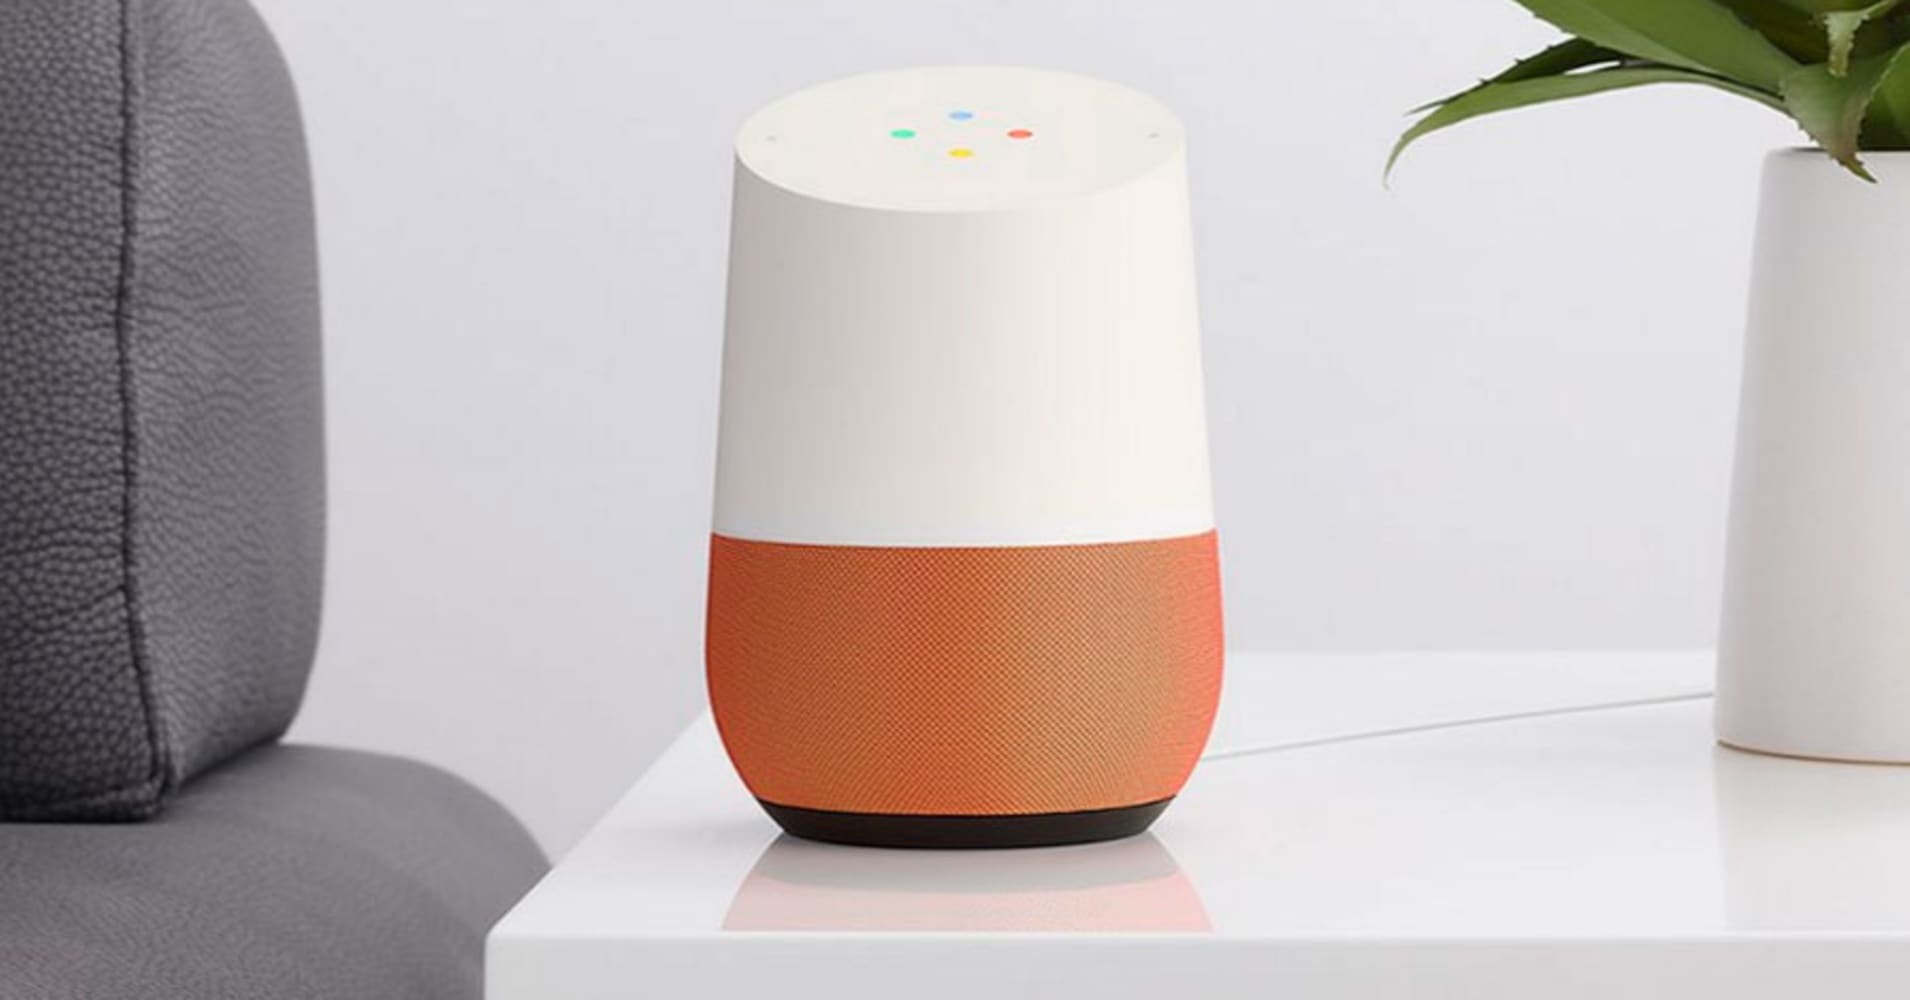 Smart Speaker Alerts the Cops to an Assault After a Man Allegedly Threatened to Kill his Girlfriend